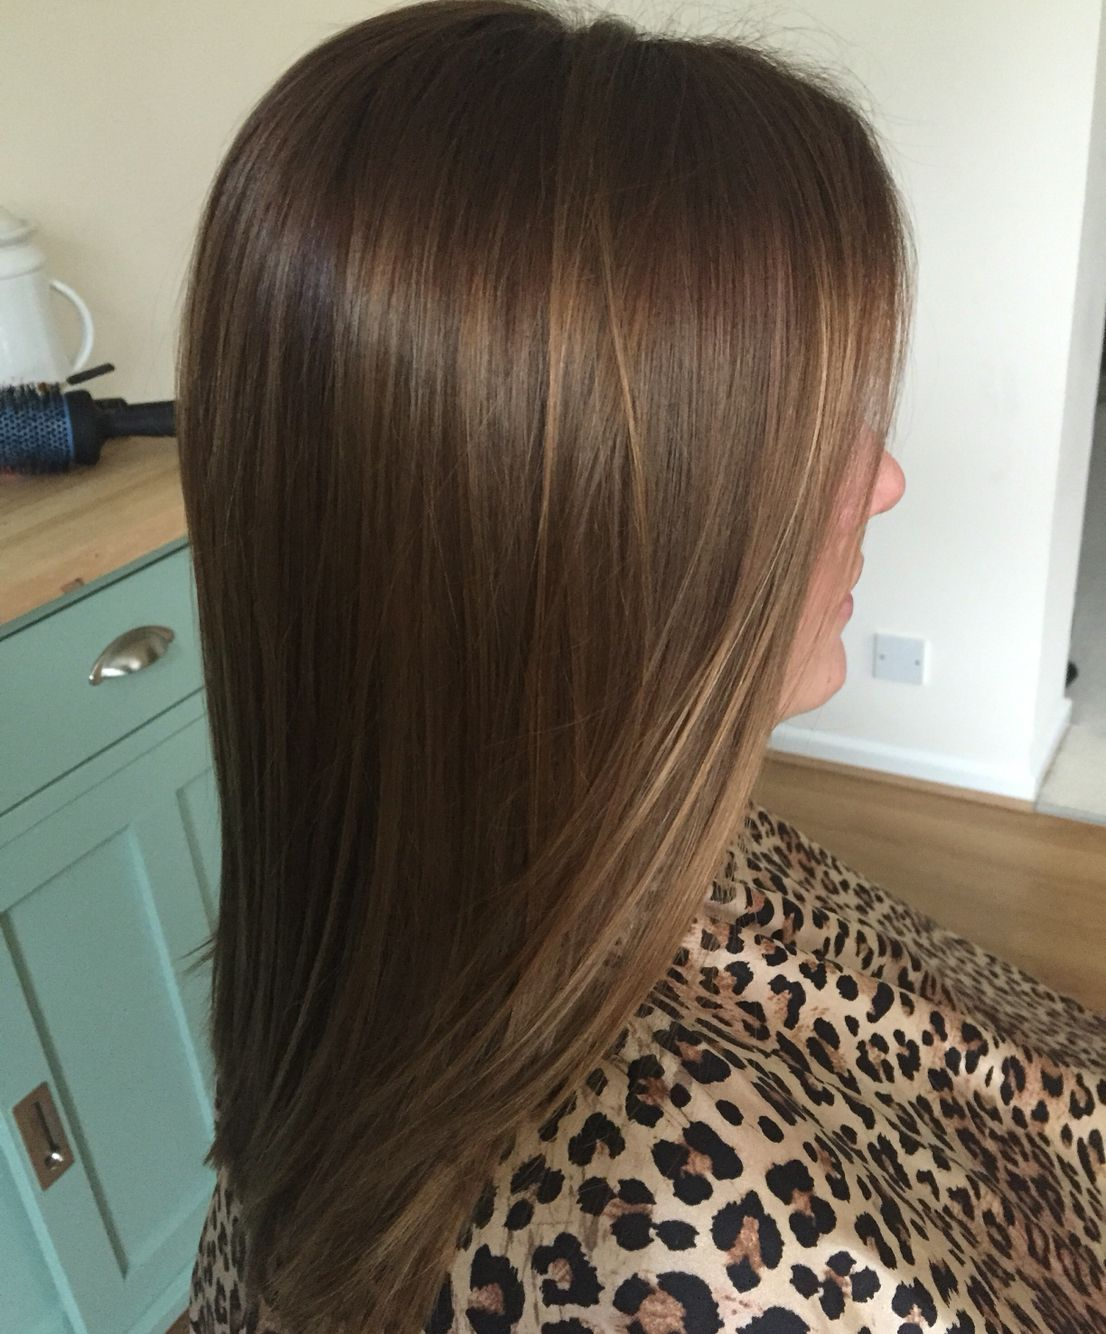 25 Best Hairstyle Ideas For Brown Hair With Highlights | Brown ...